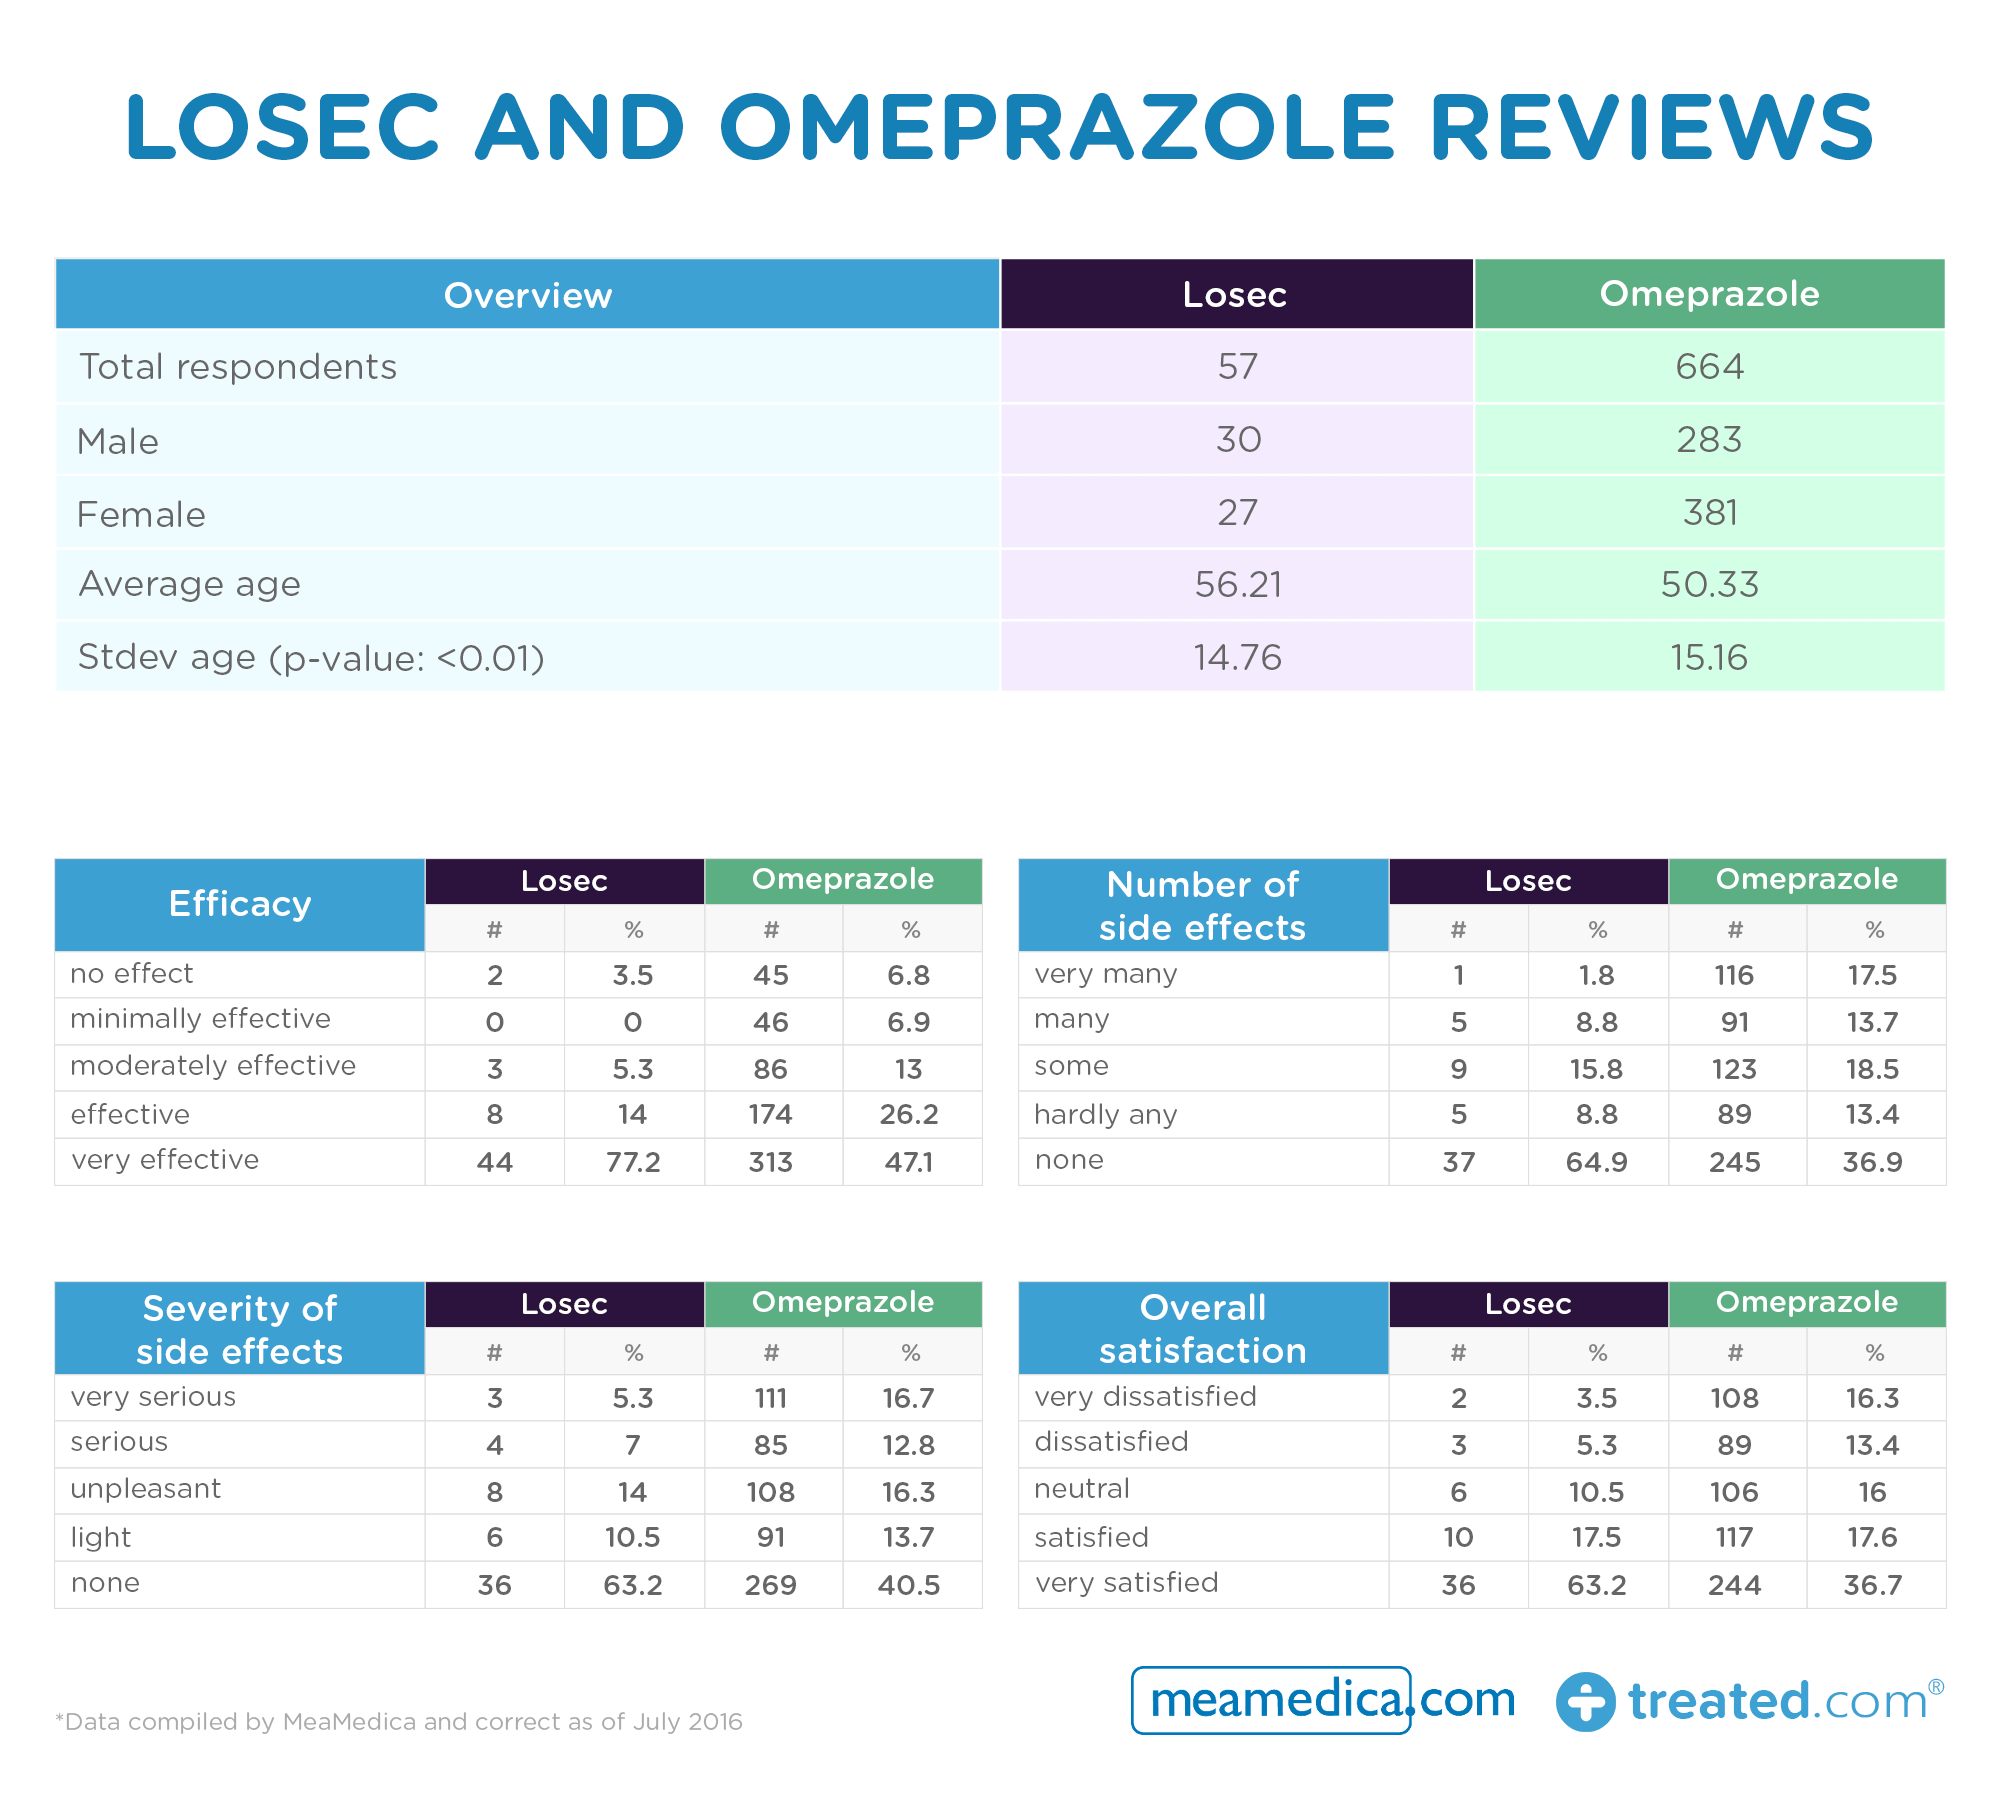 Losec and Omeprazole reviews table